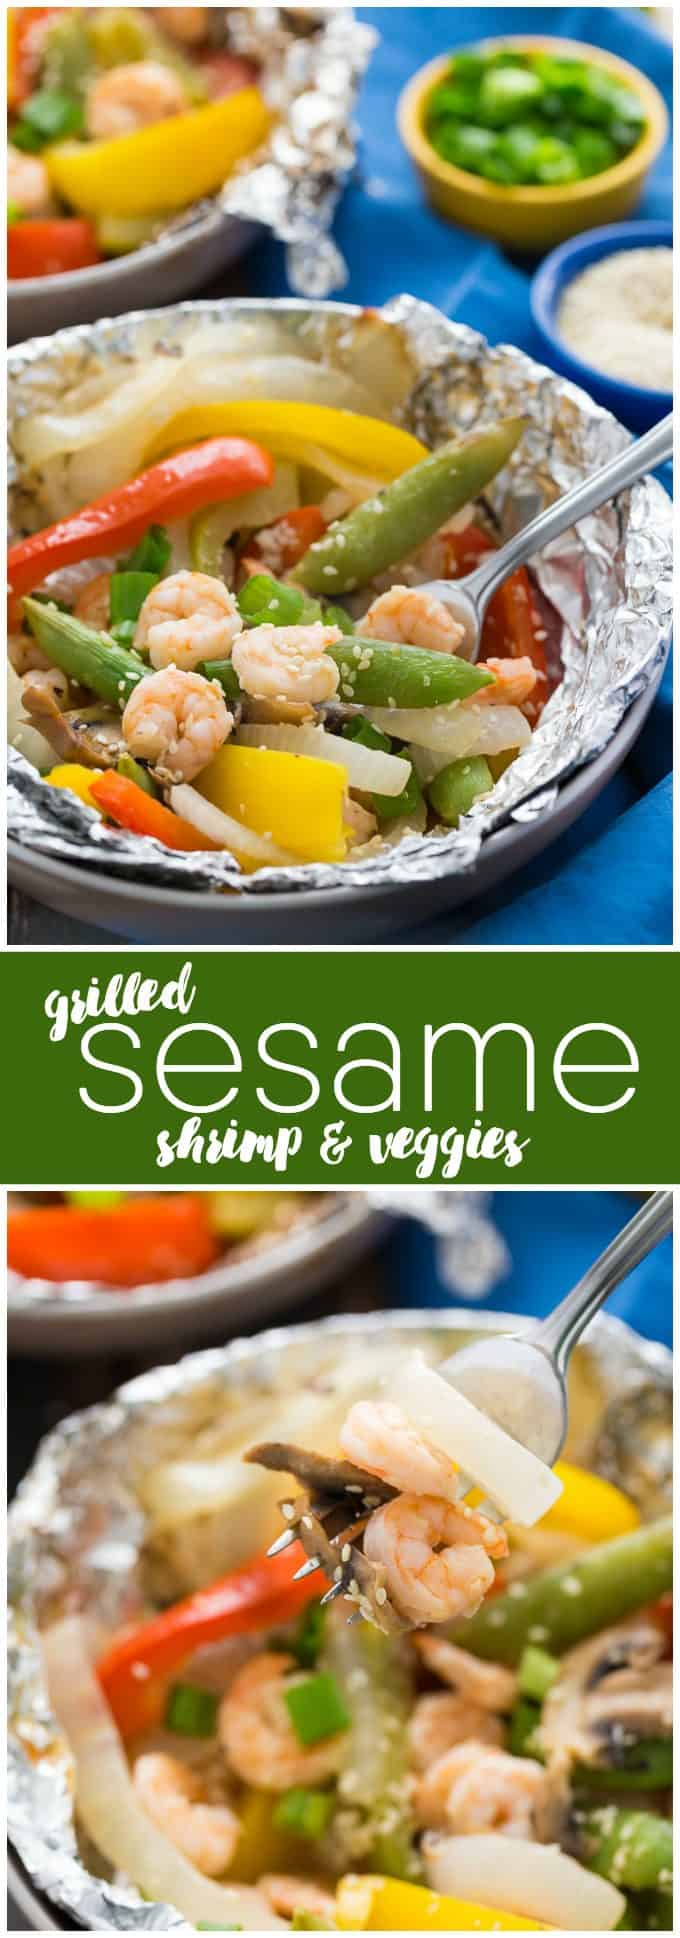 Grilled Sesame Shrimp & Veggies - This summer grilling recipe is a triple whammy - it's easy to prep, simple to cook and fast to clean up afterwards. Your family will love these individual foil packets filled with veggies, shrimp and a mouthwatering sesame sauce.